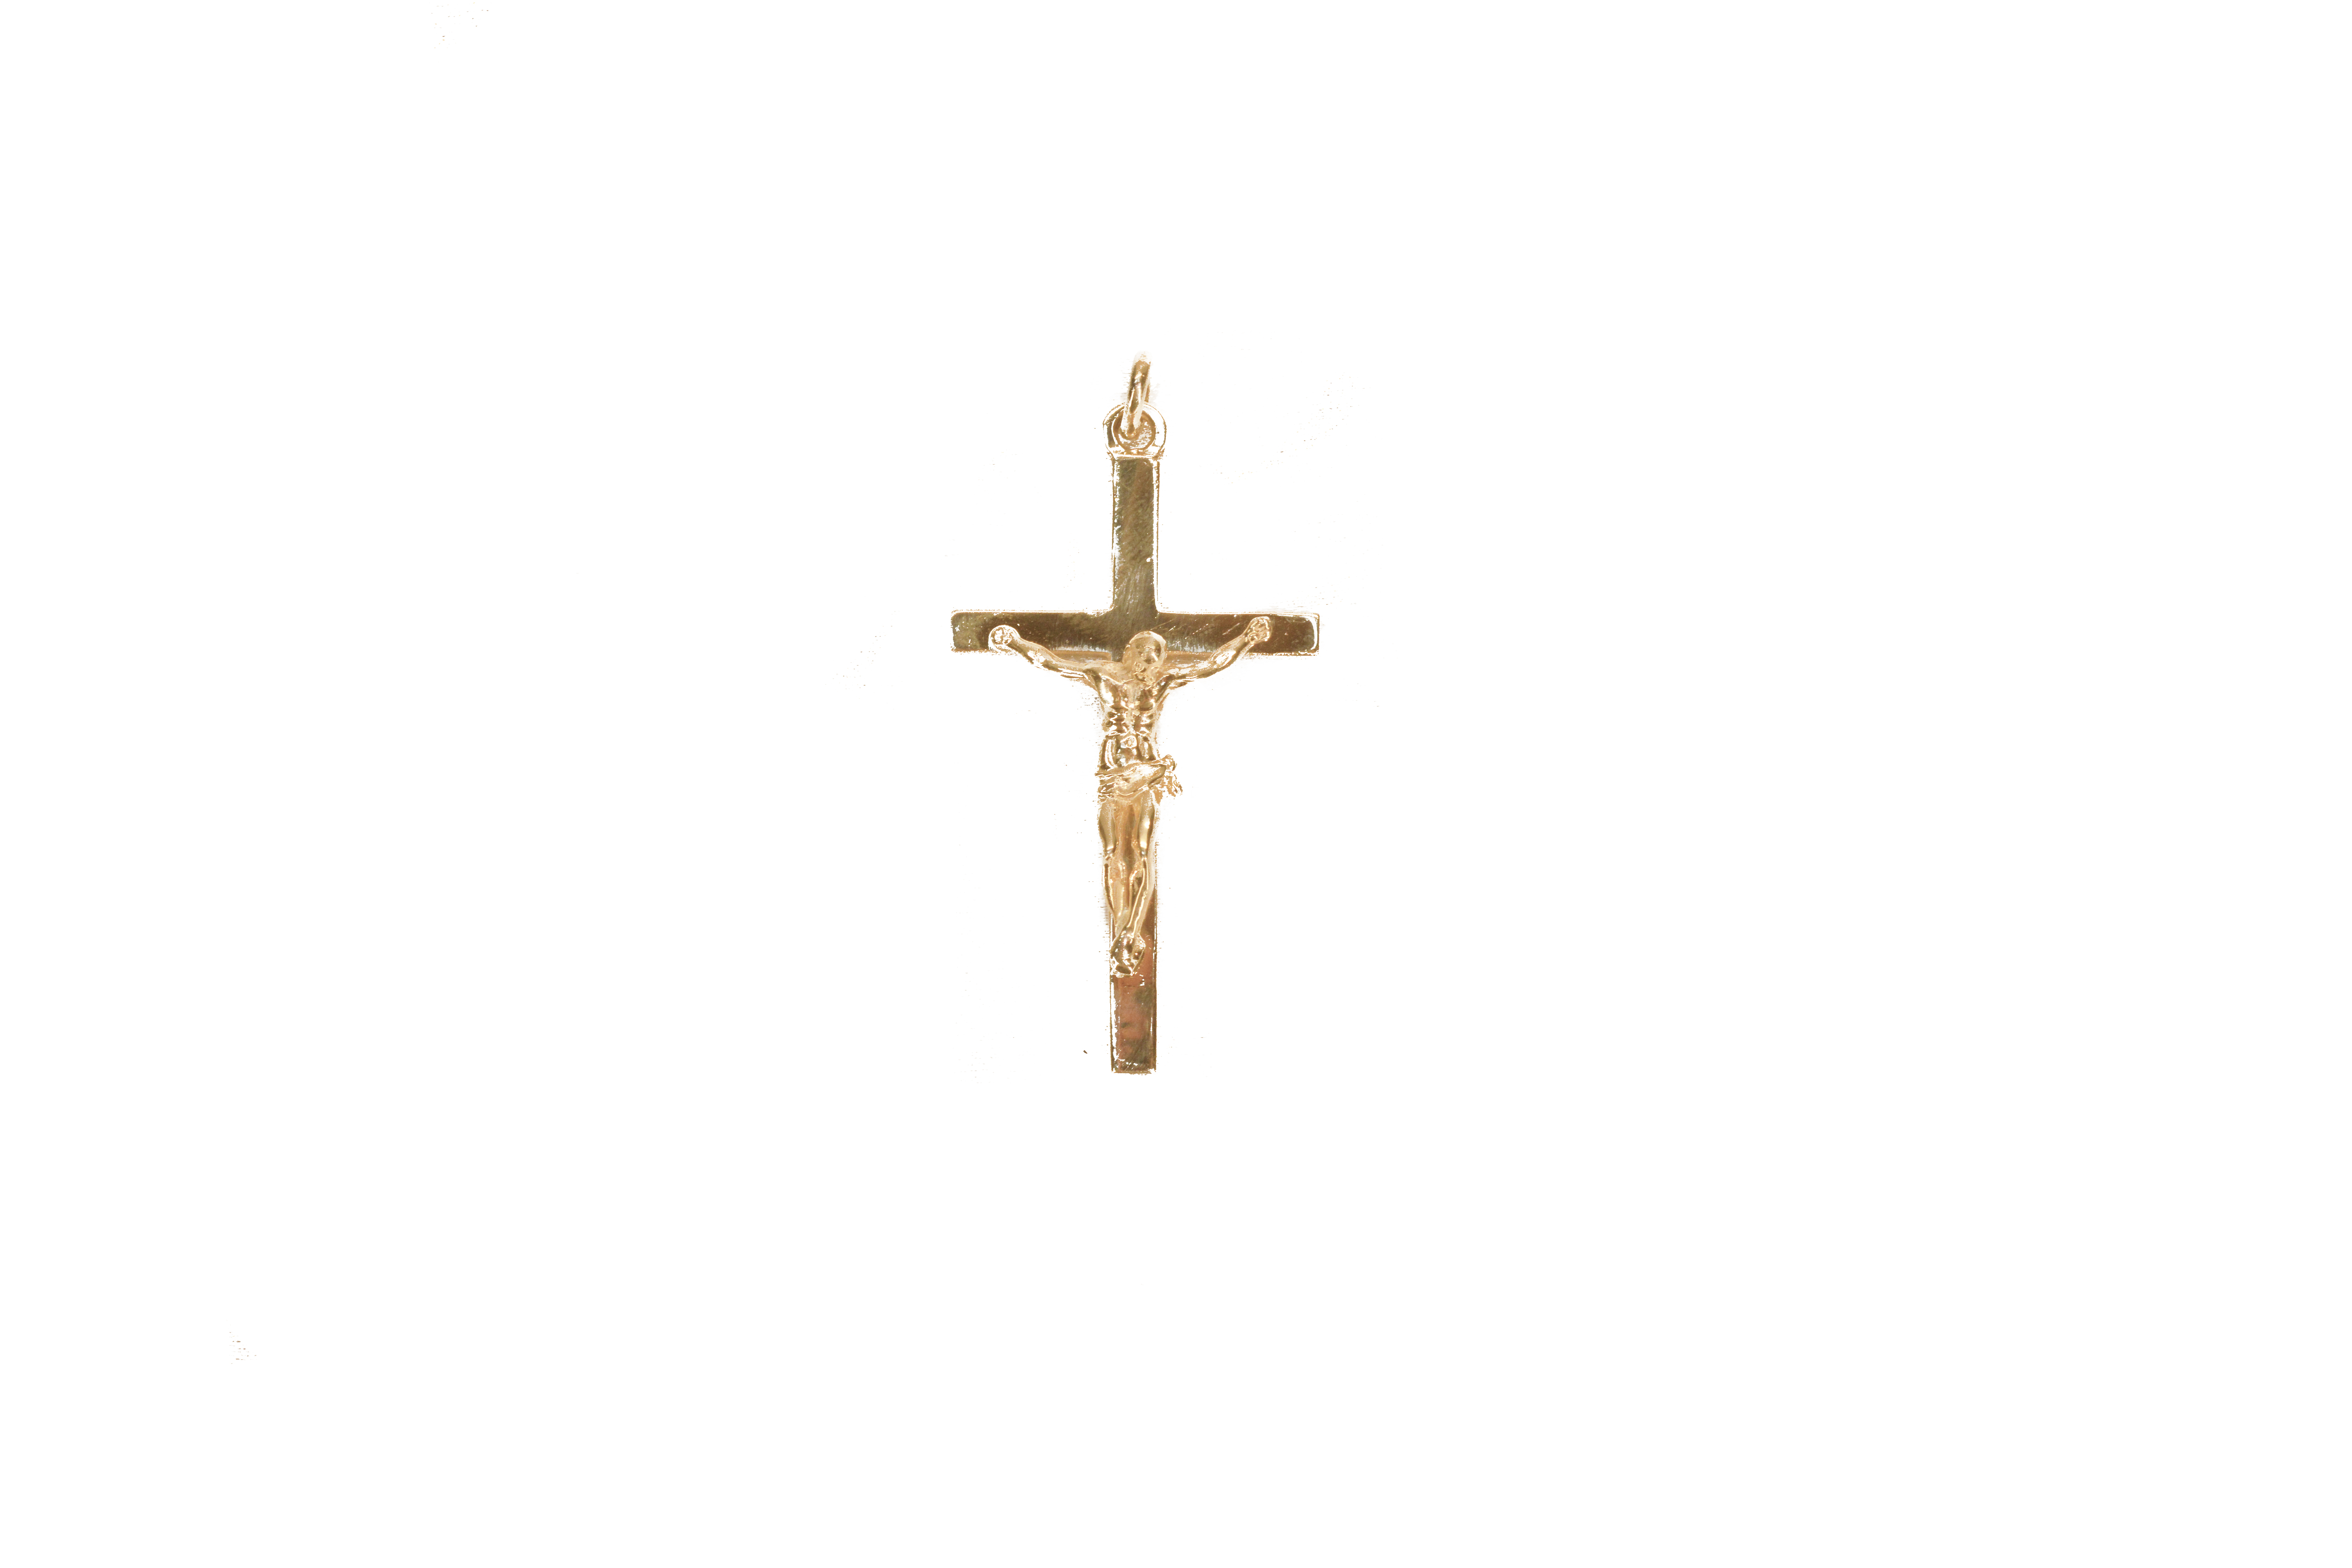 Croix en or 14k / Gold Cross 14k